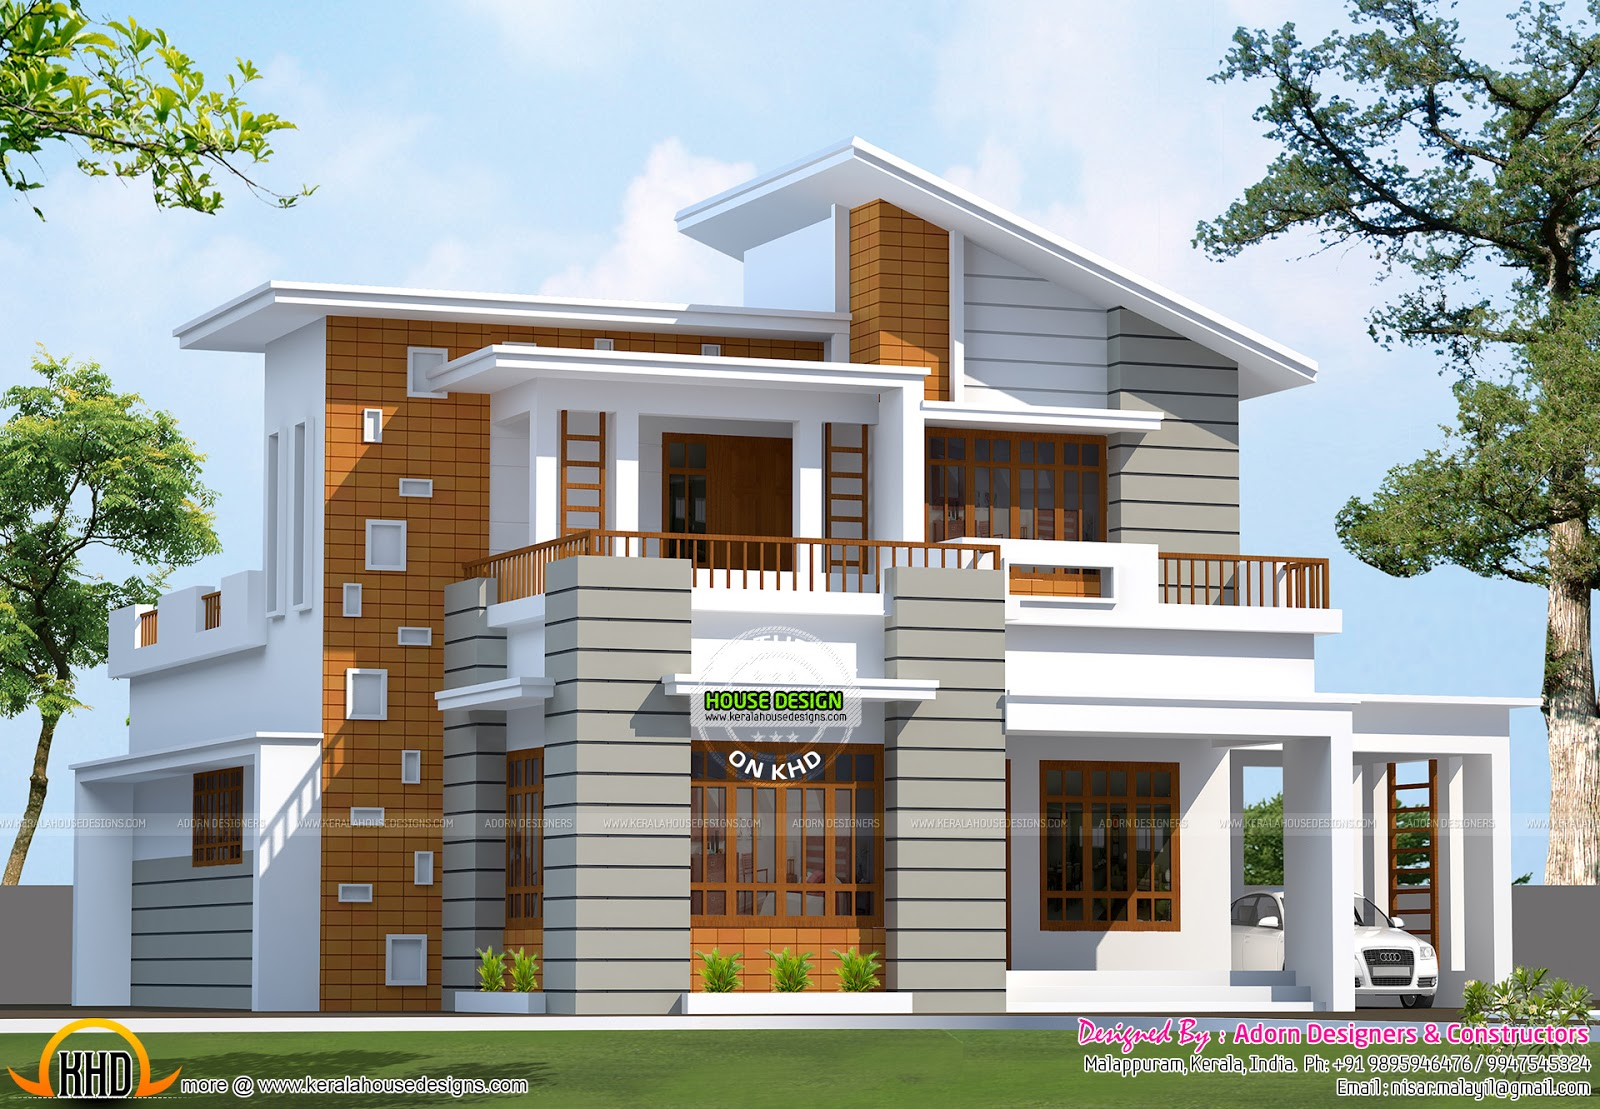 Indian house outlook design modern house for Home design pictures